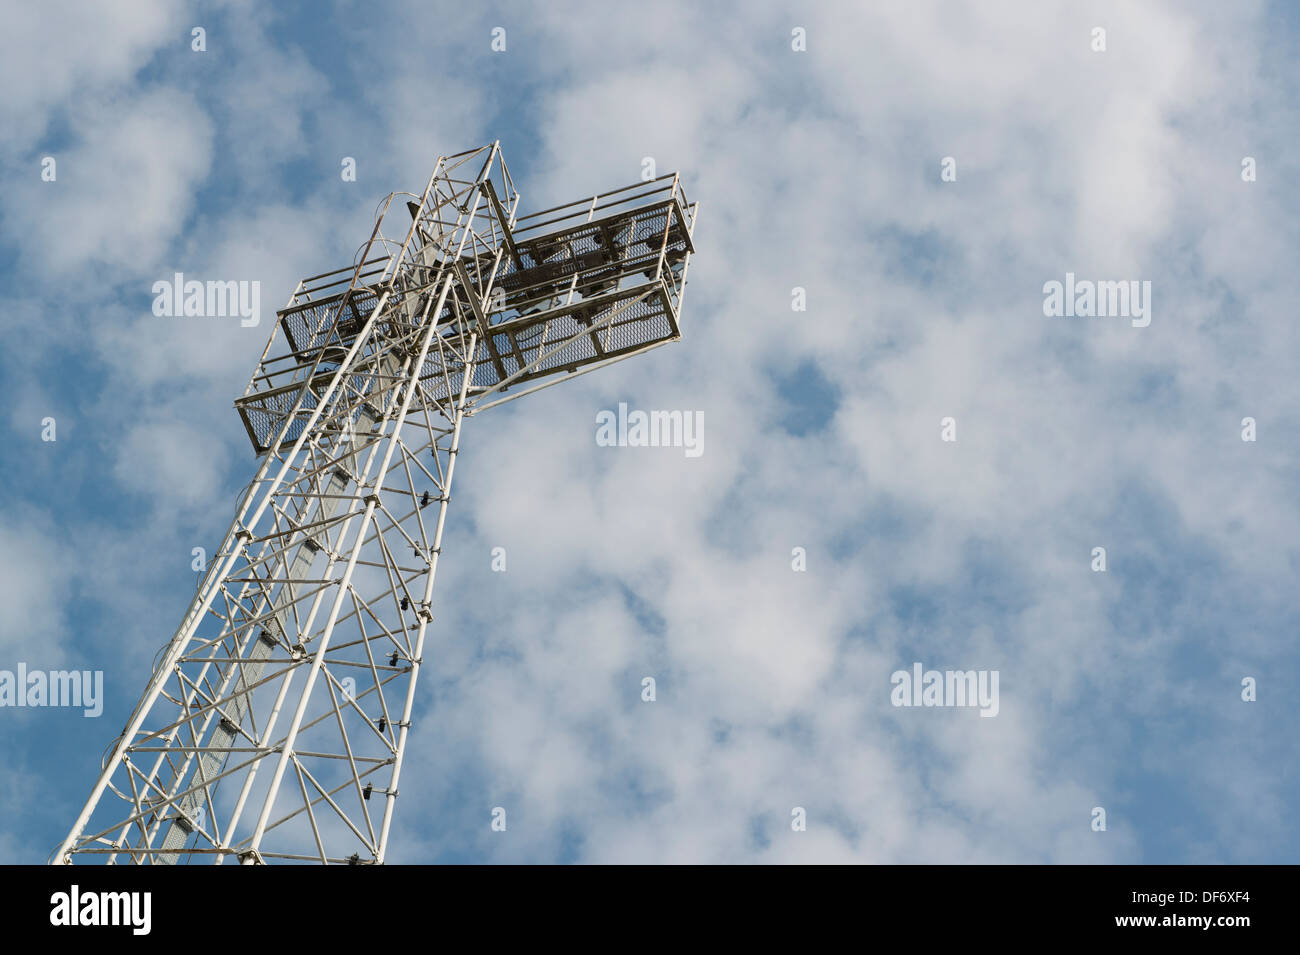 A traditional looking floodlight at the Glyndwr University Racecourse Stadium in Wrexham in North Wales, UK. - Stock Image